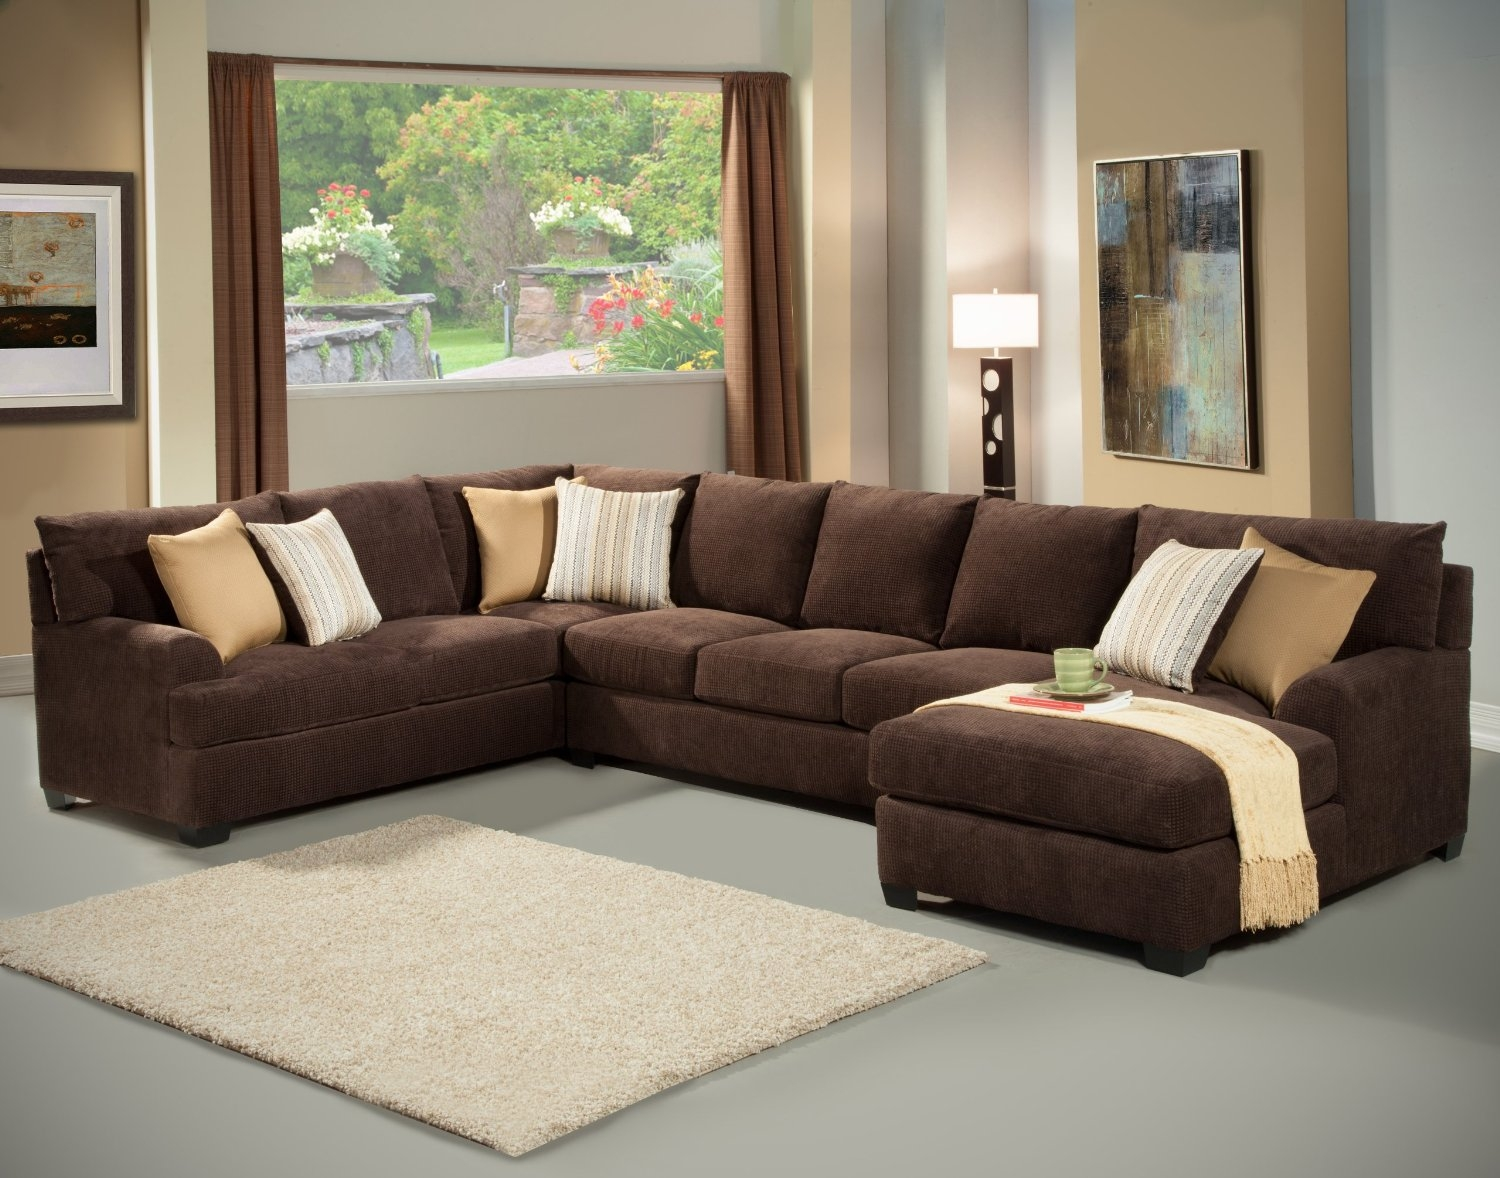 Chocolate Brown Sectional Sofa With Chaise Cleanupflorida With Regard To Chocolate Brown Sectional Sofa (#8 of 12)